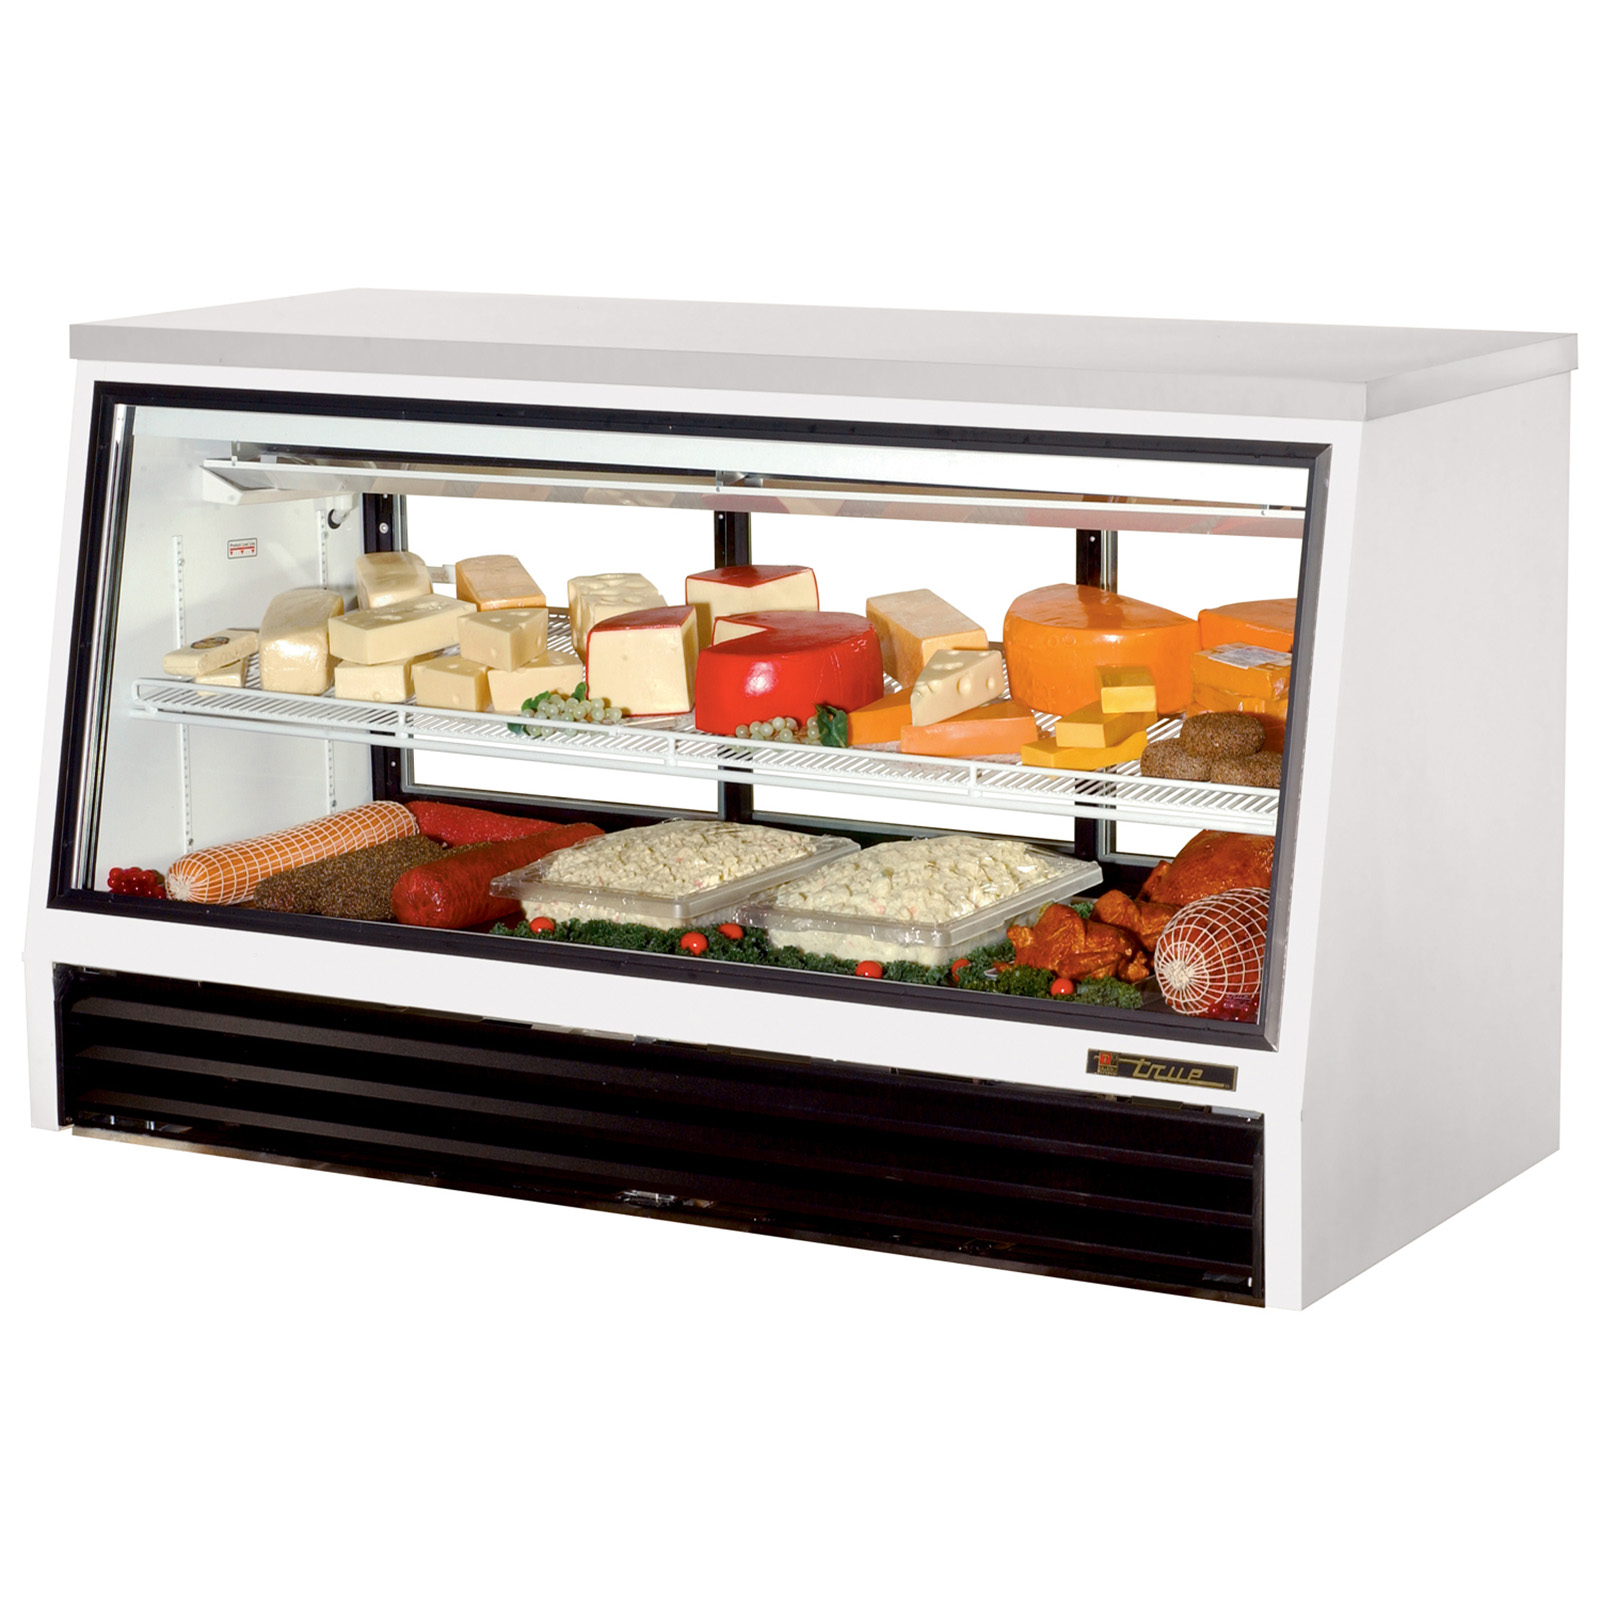 TSID-72-3-L True - Counter-Height Deli Case see-thru